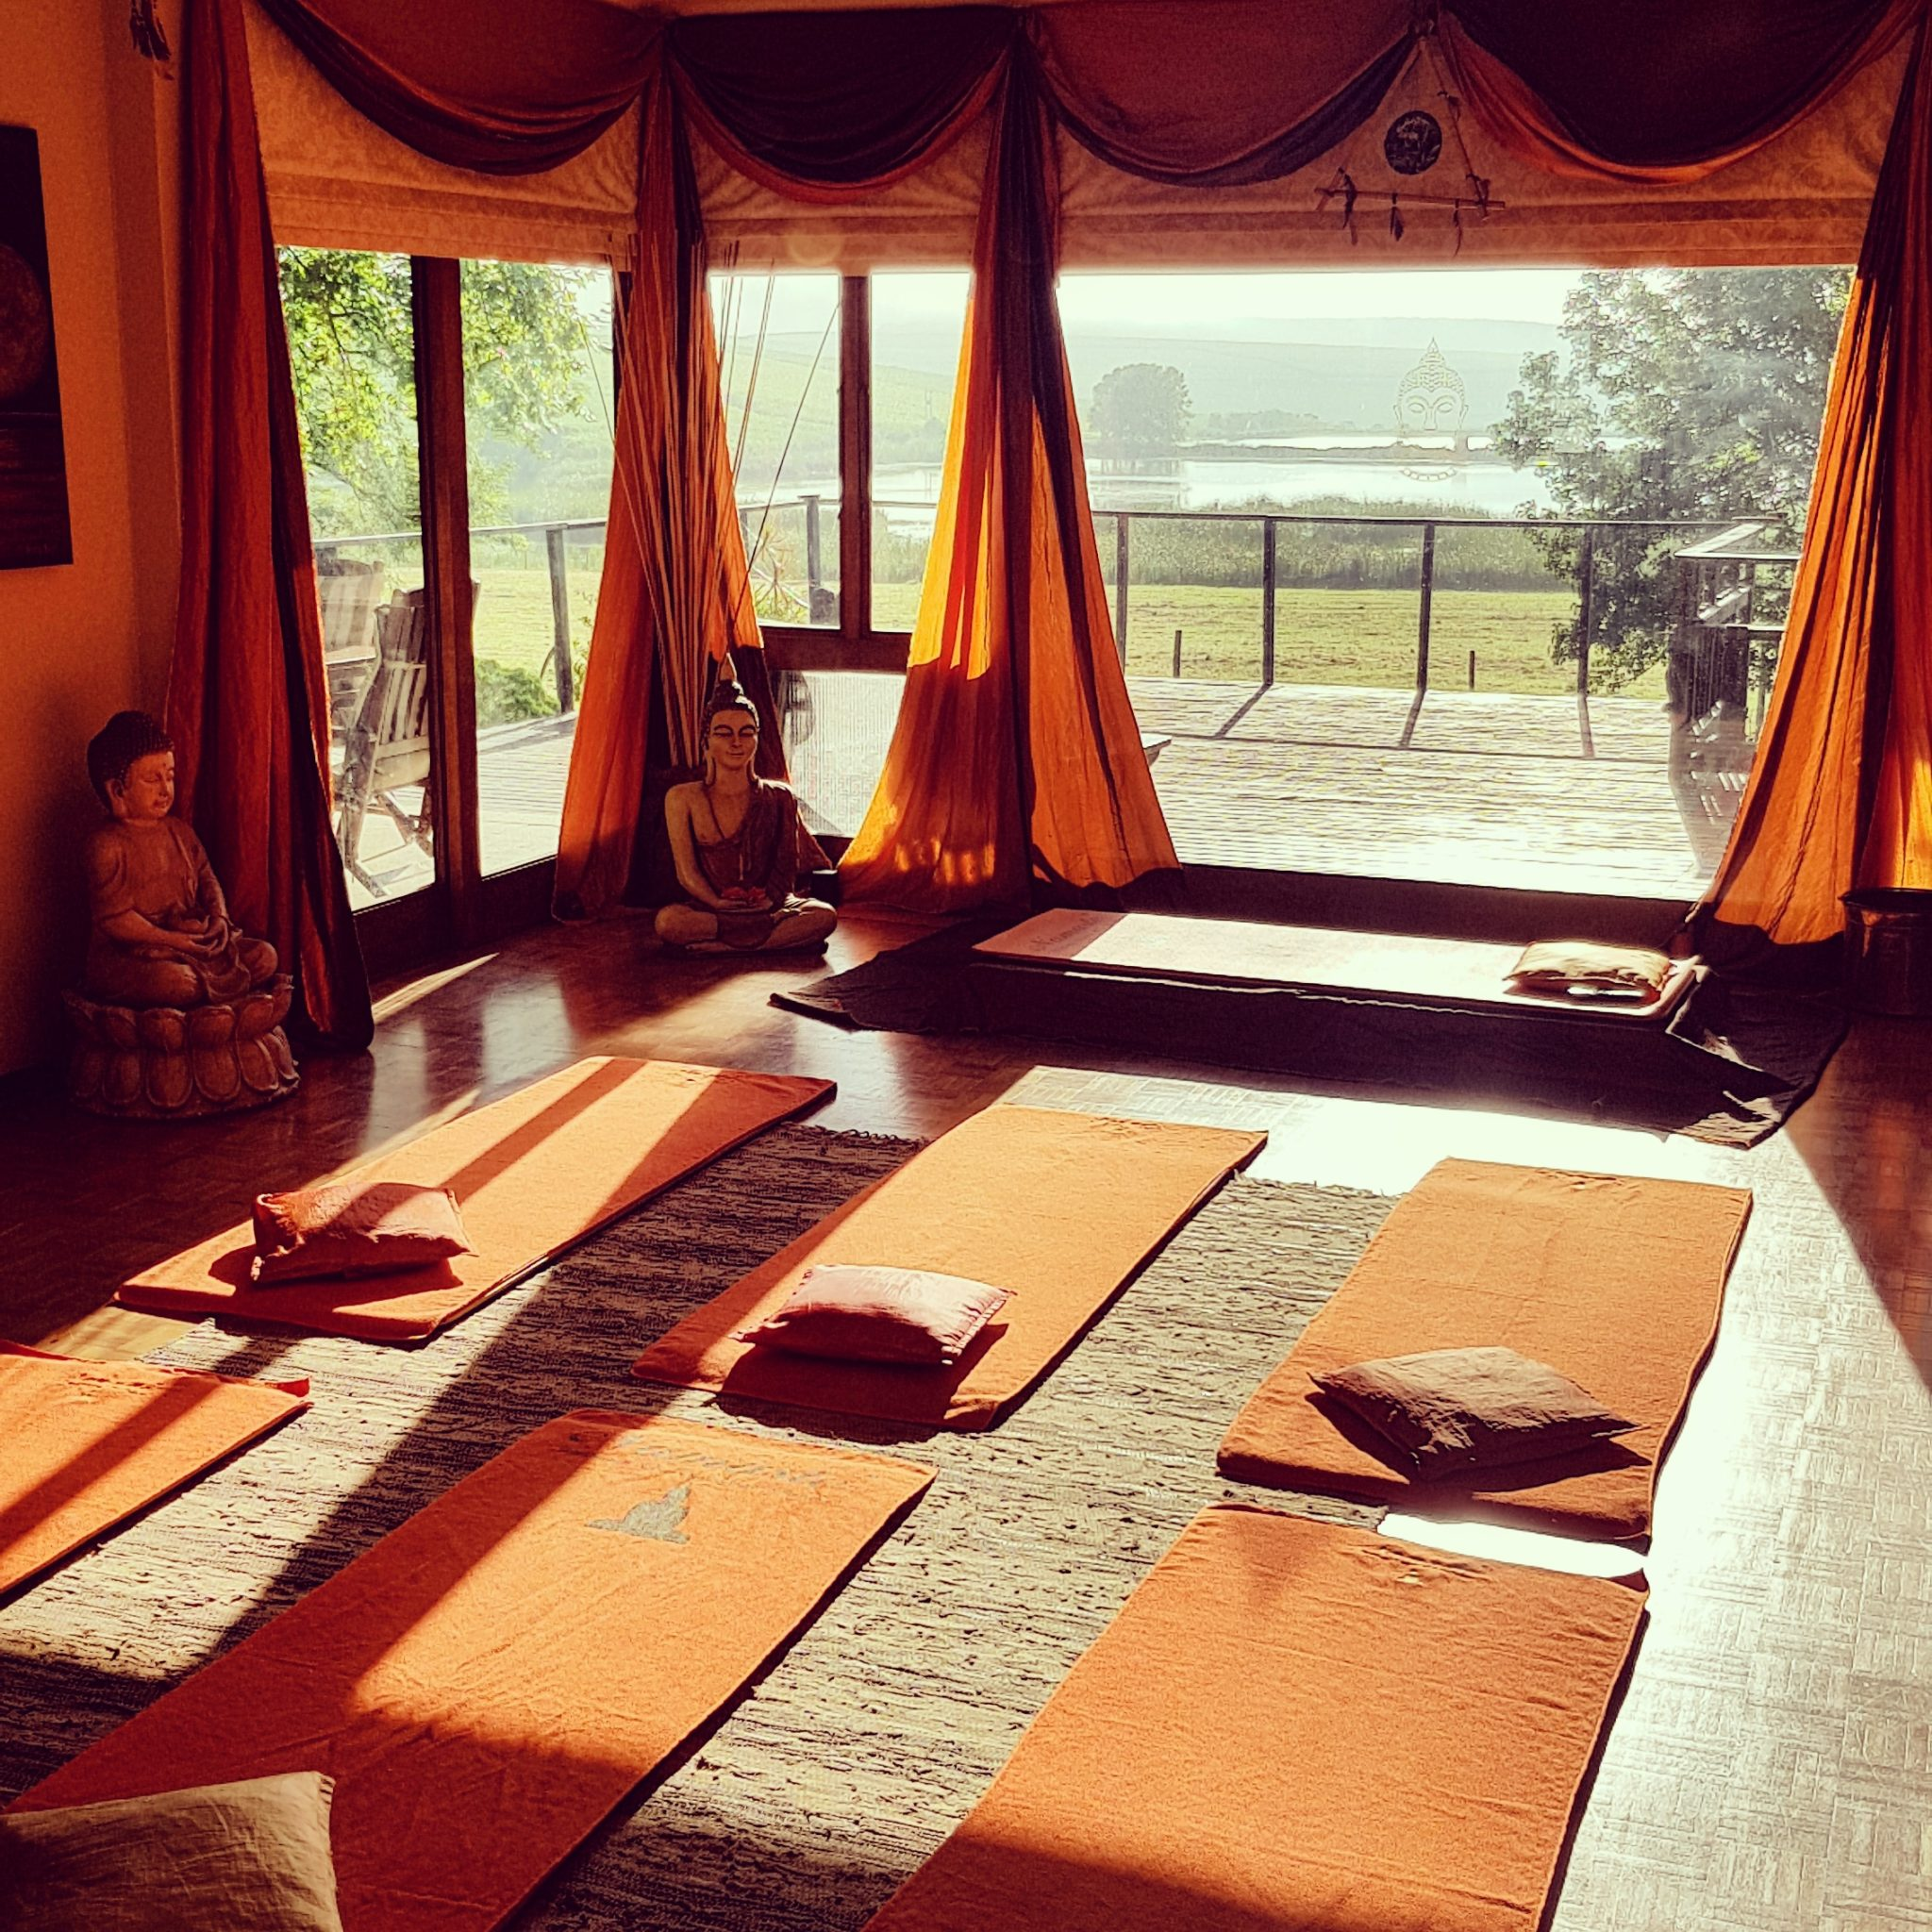 Yoga Studio with orange mats